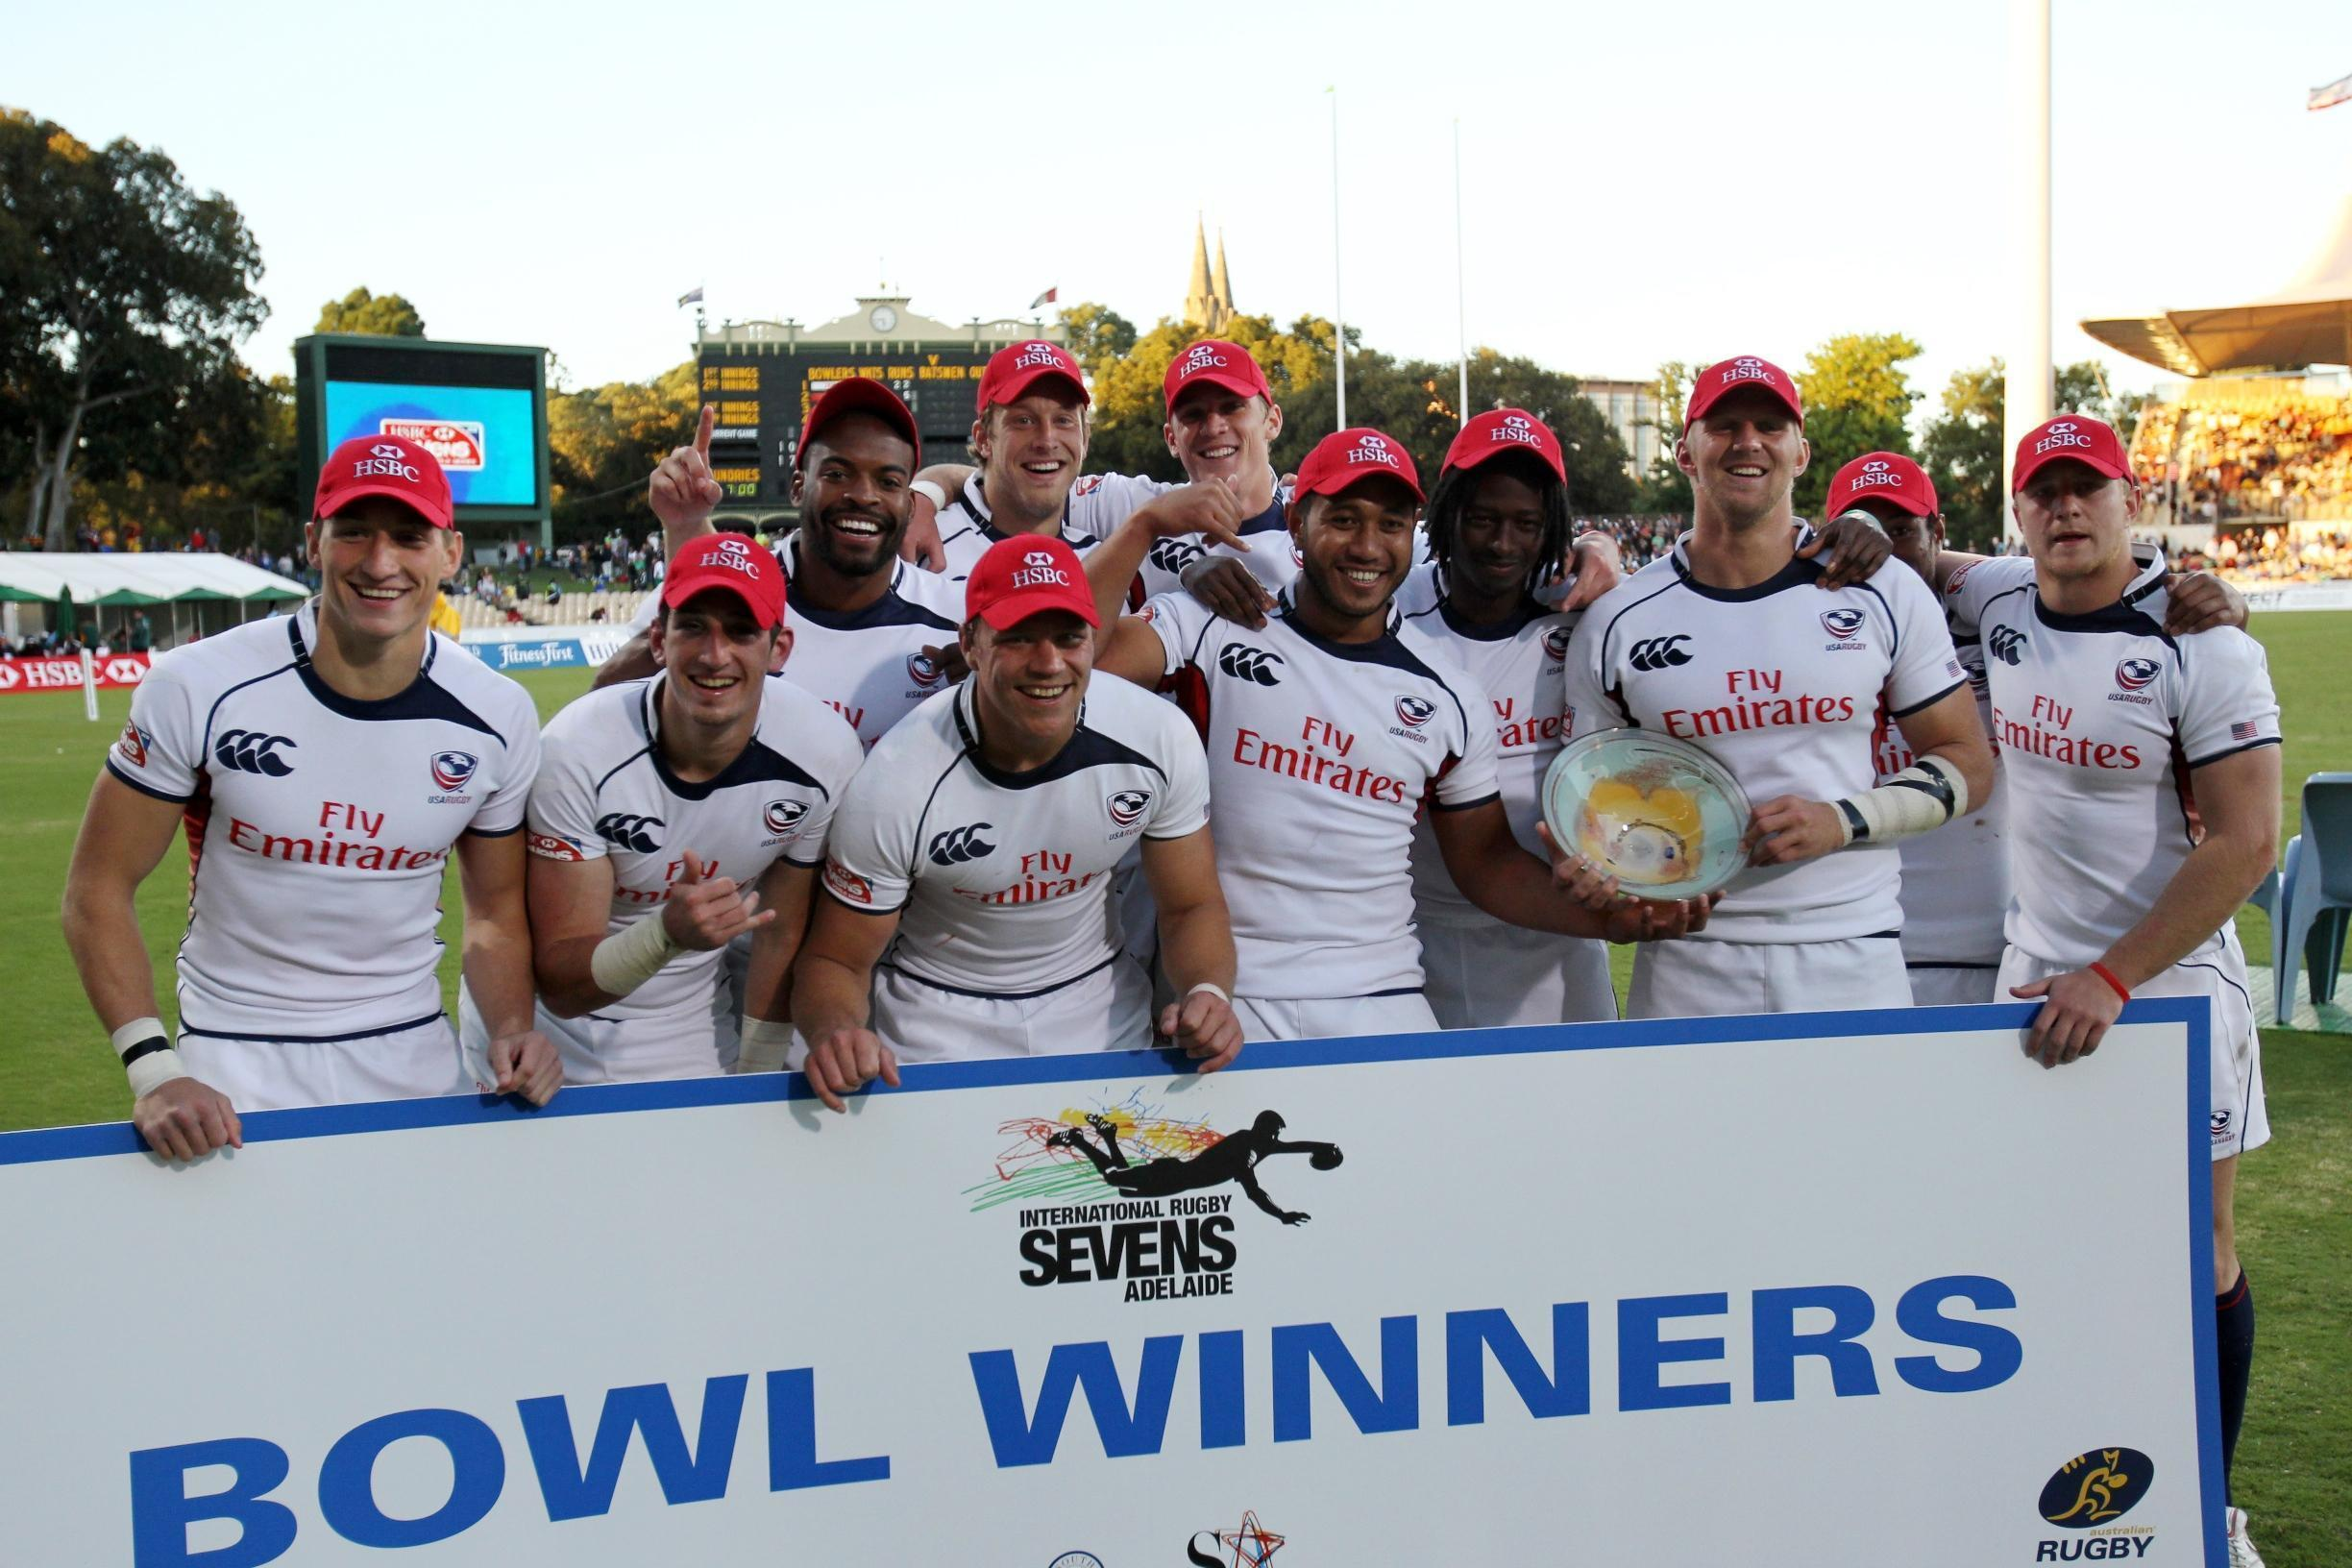 USA Win Bowl in Adelaide